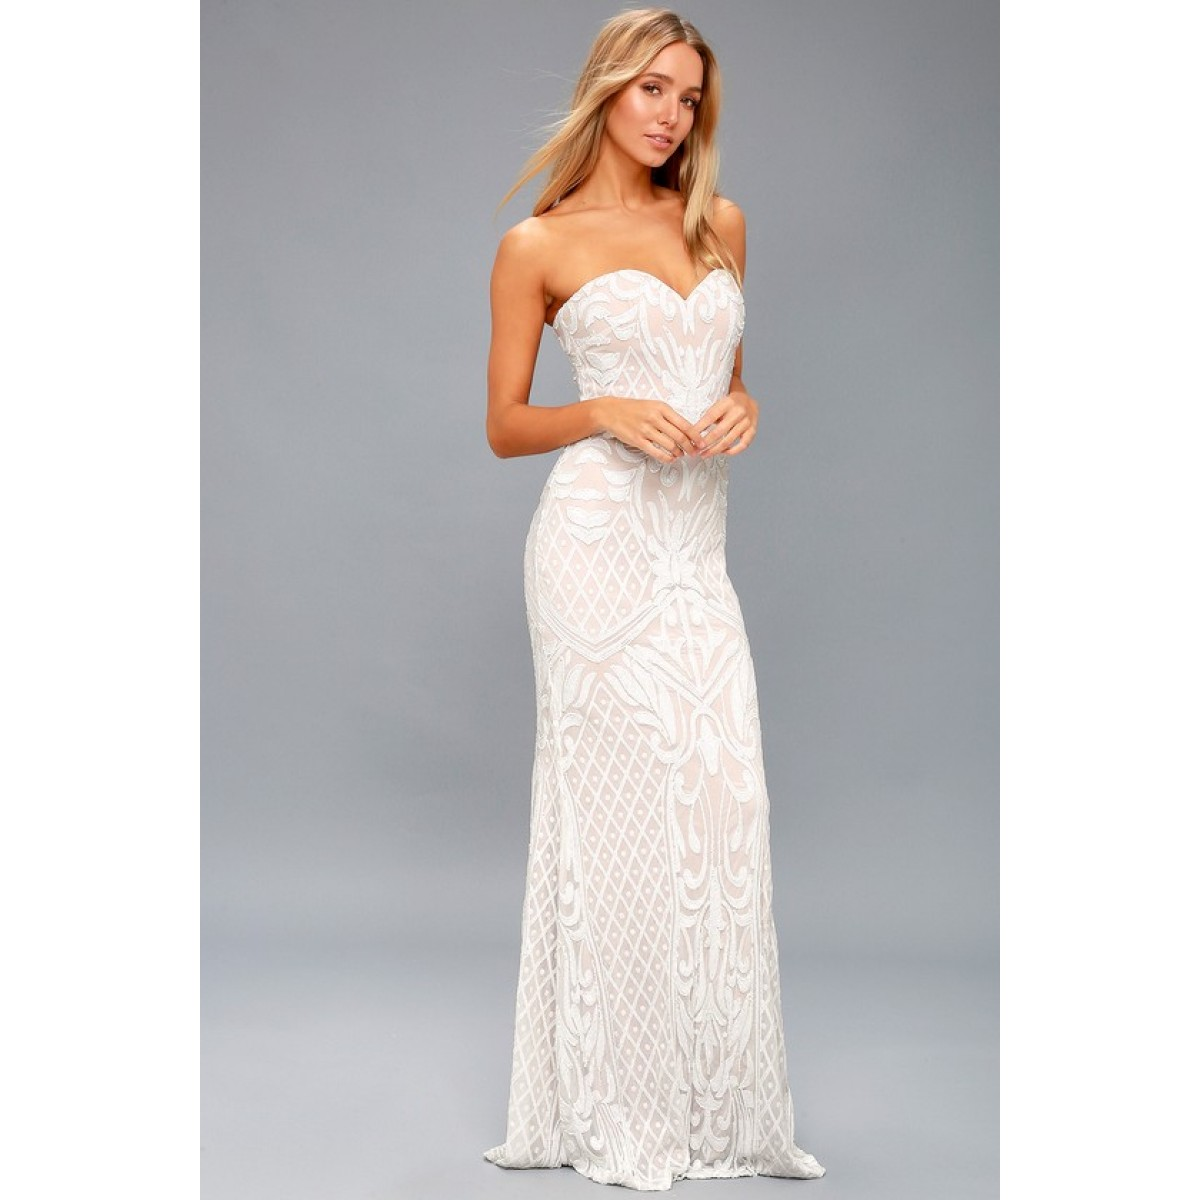 Olivia White Sequin Strapless Maxi Dress - Lulus